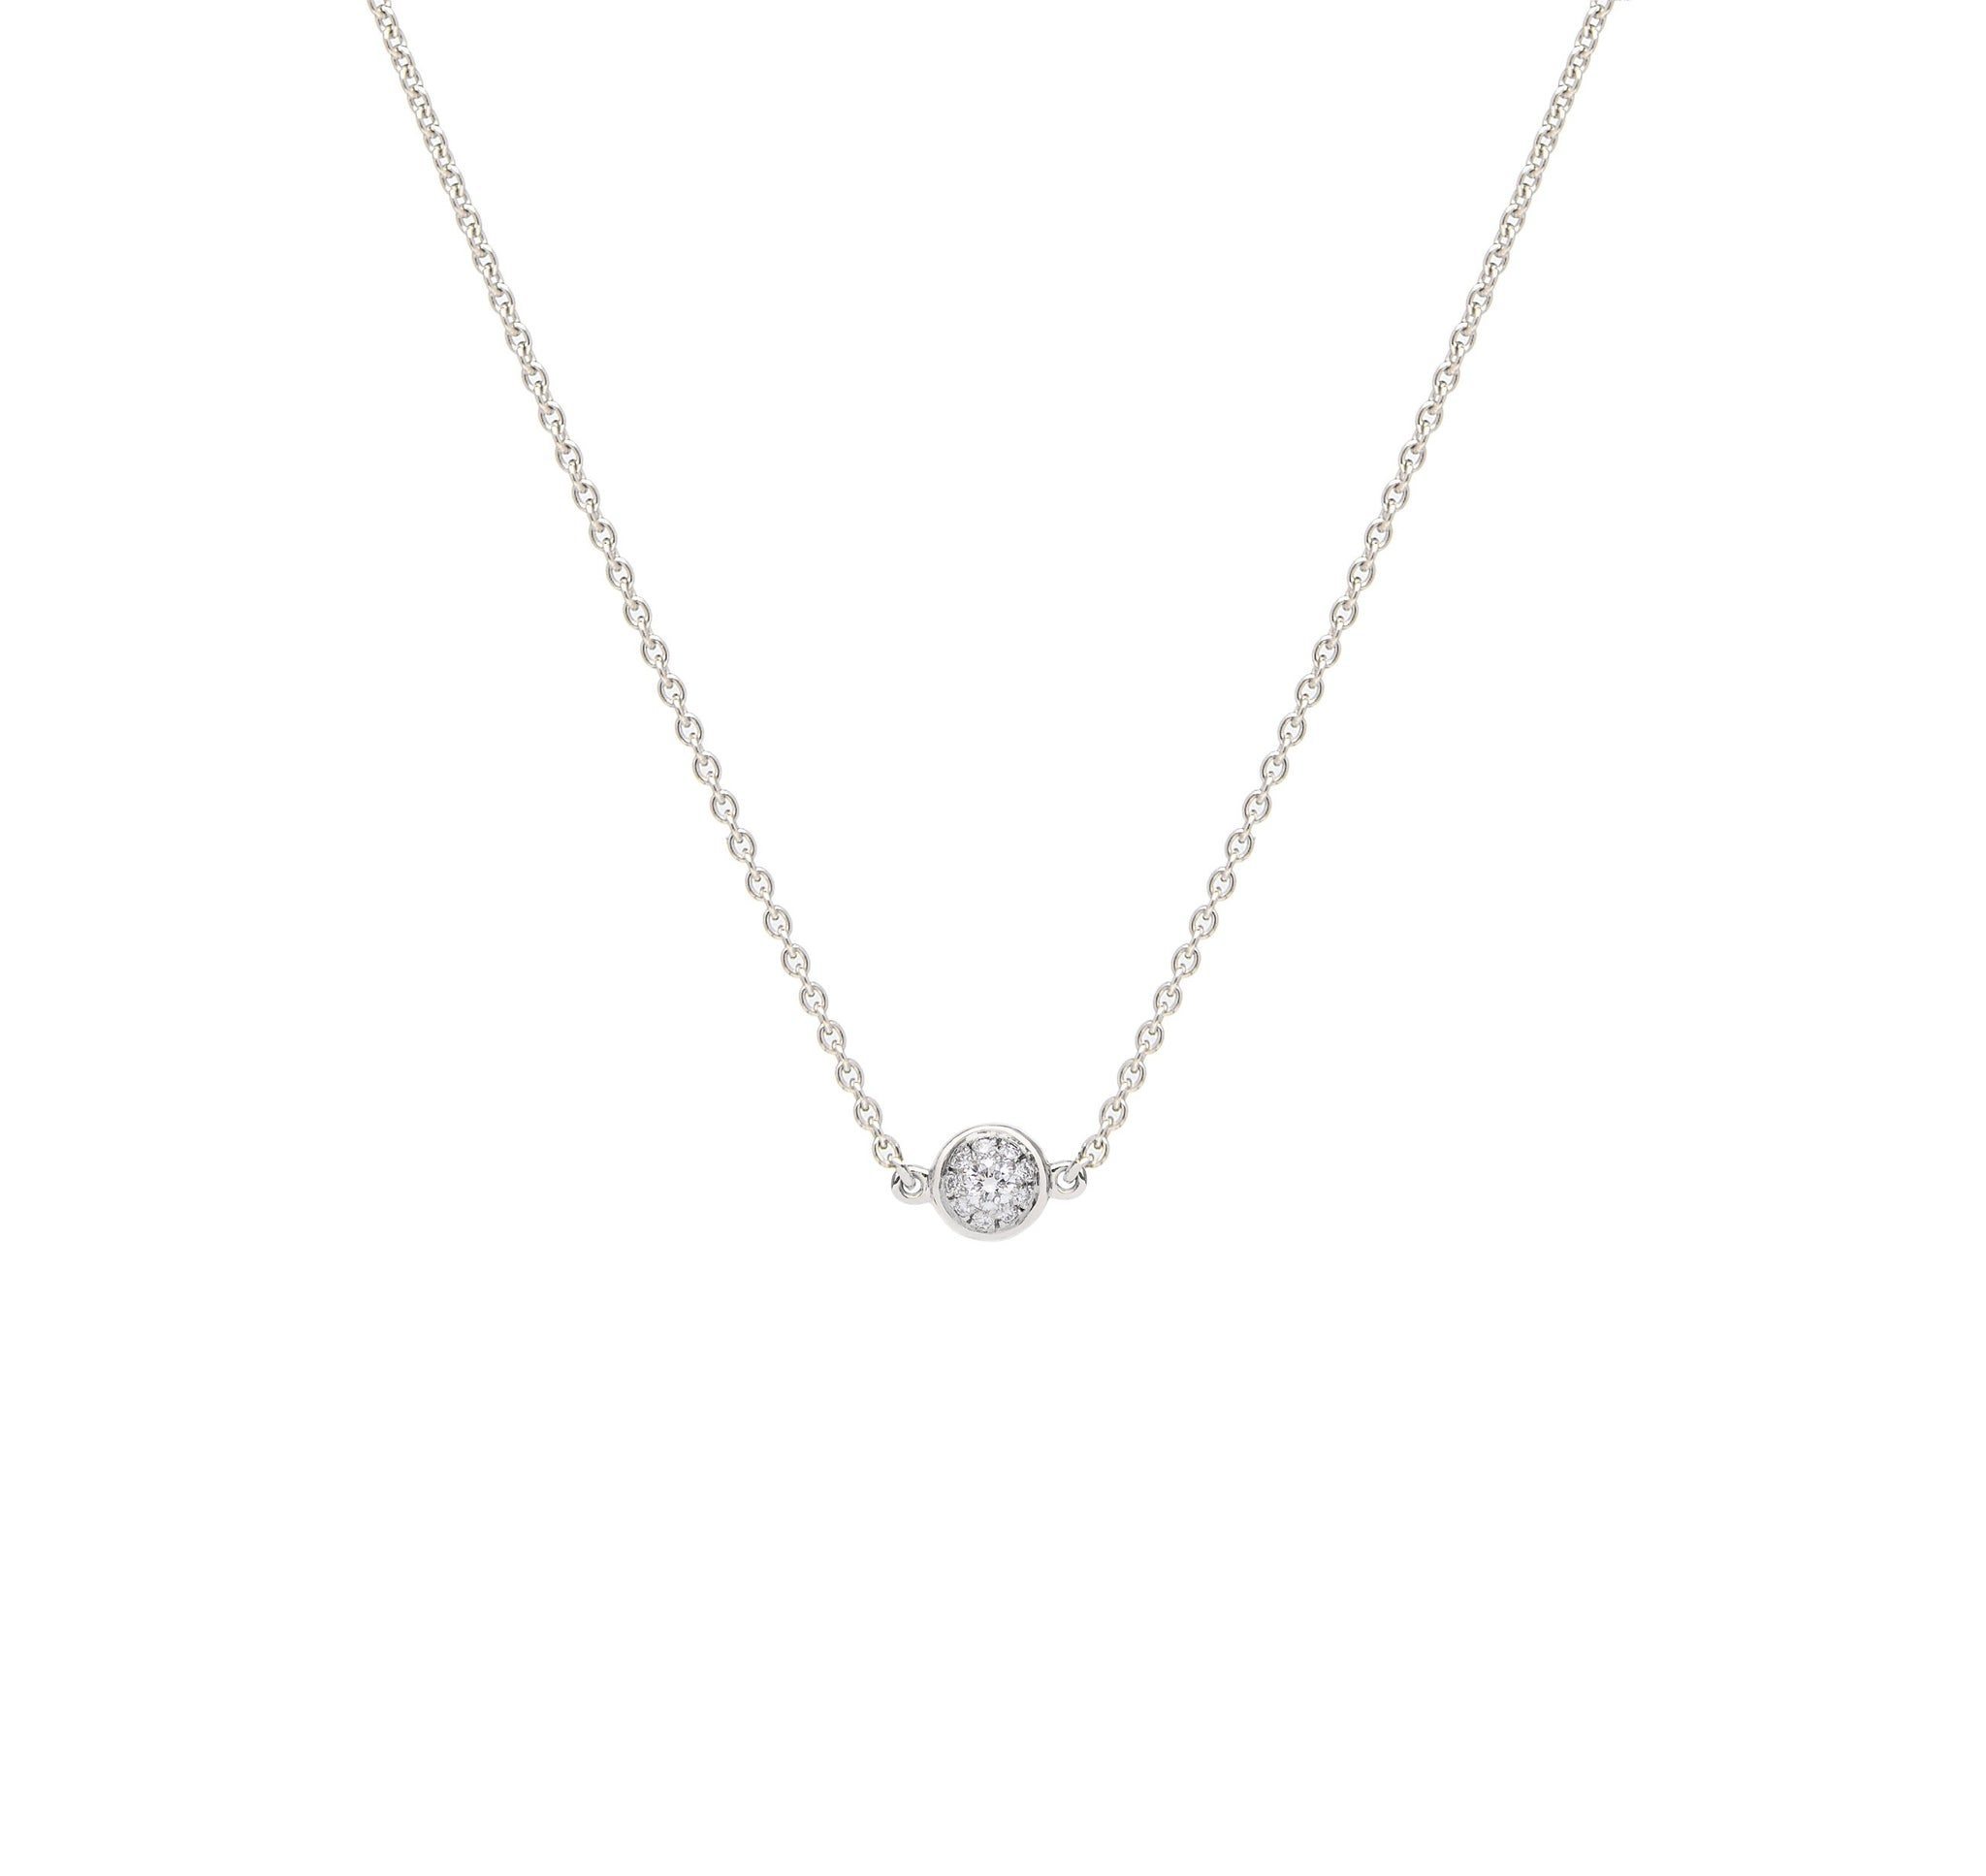 Mana Necklace - White Gold and Diamond